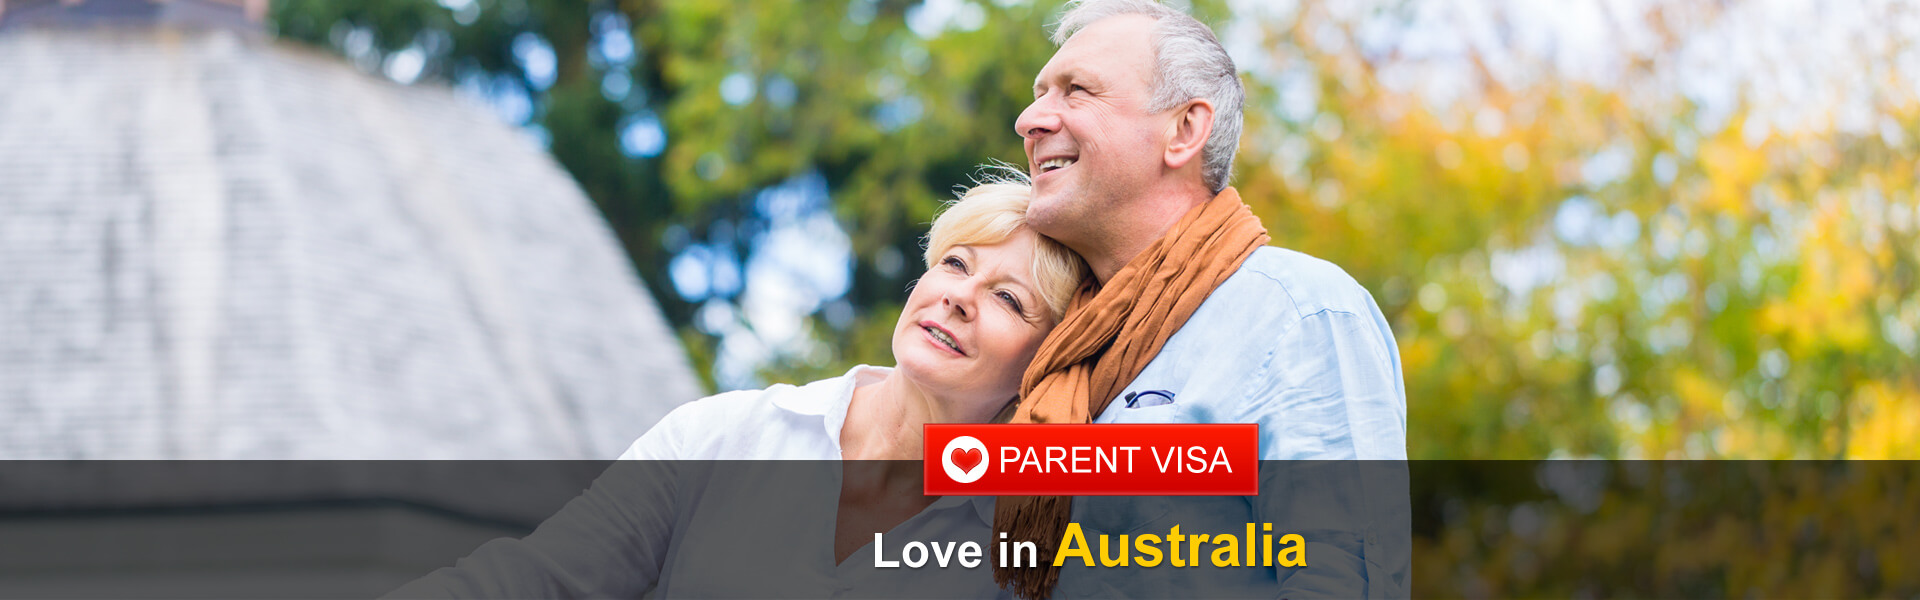 Parent visa